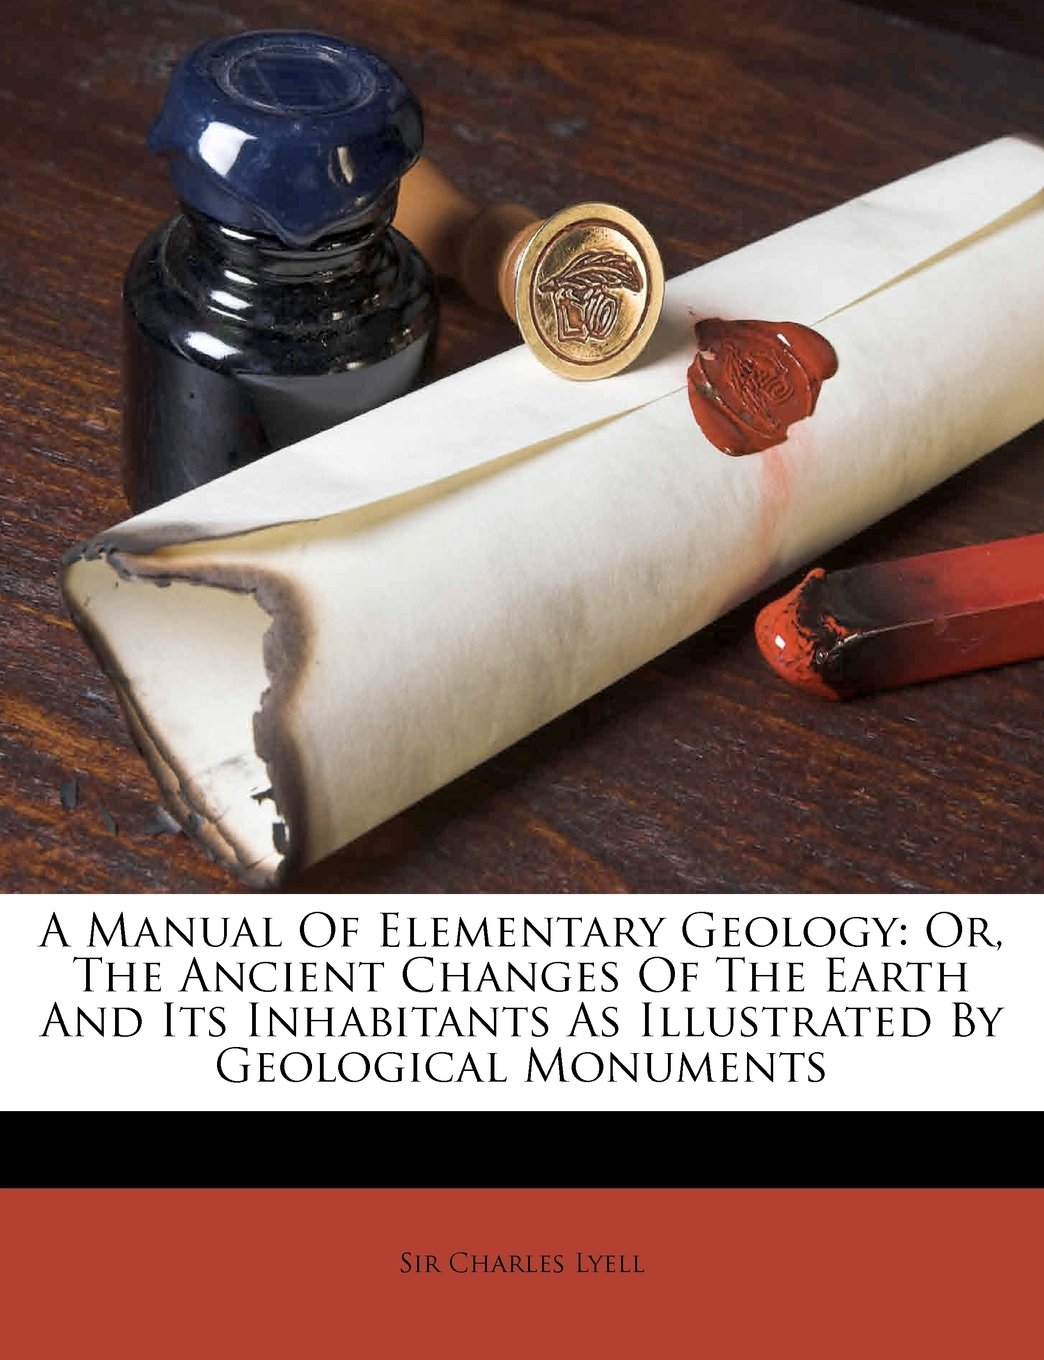 Download A Manual of Elementary Geology: Or, the Ancient Changes of the Earth and Its Inhabitants as Illustrated by Geological Monuments pdf epub